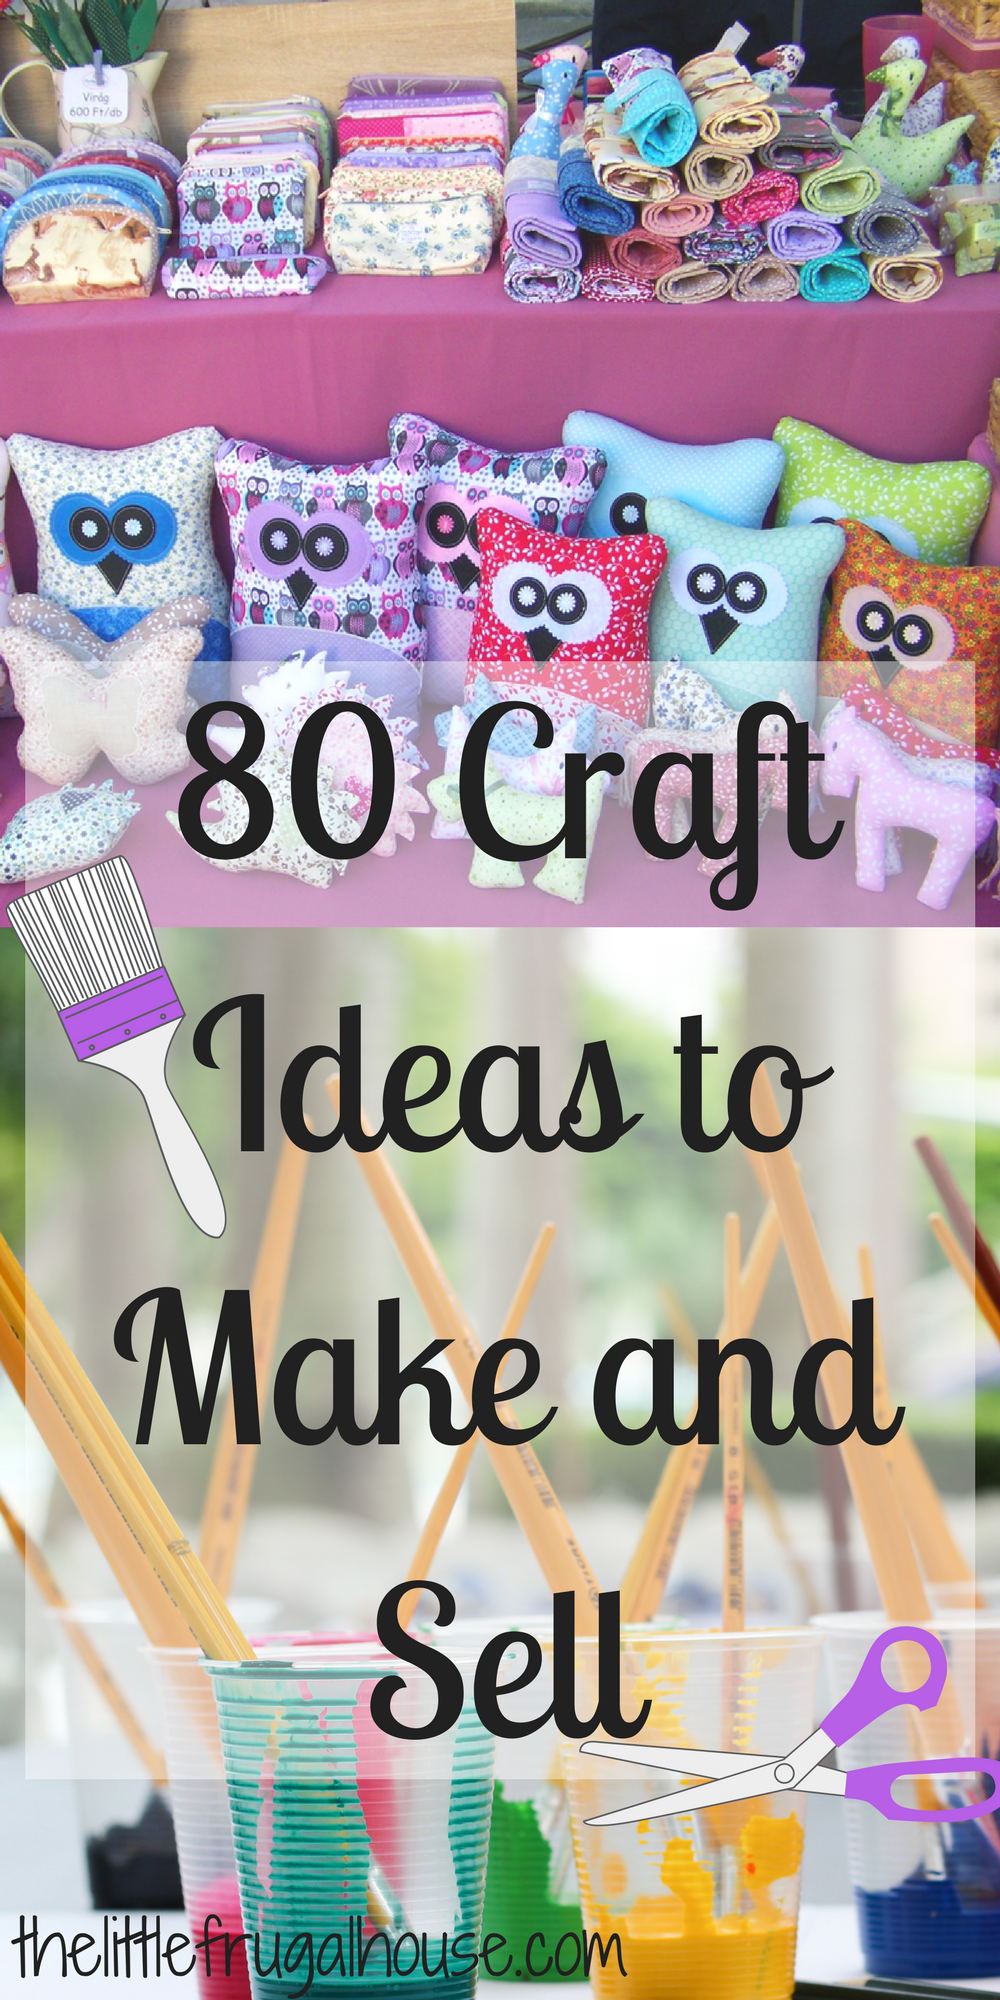 80 Crafts To Make And Sell Crafts To Make Mason Jar Crafts Diy Crafts To Make And Sell